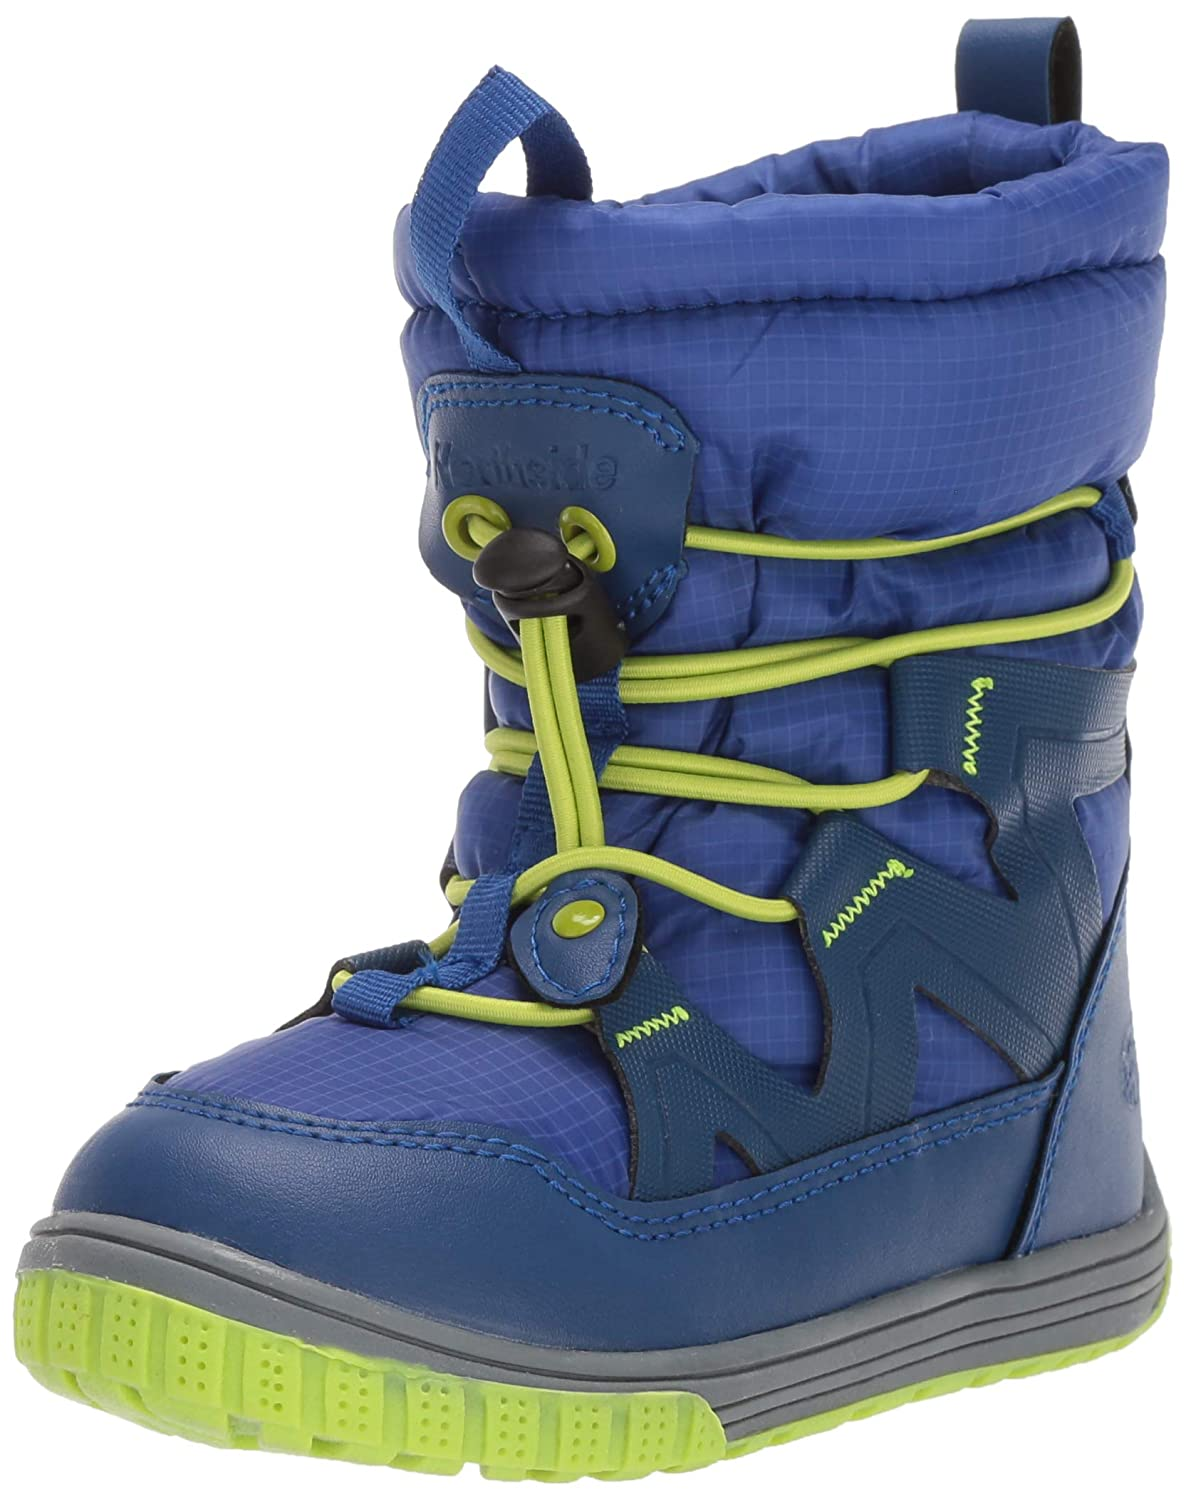 Northside Kids' Toboggan Snow Boot